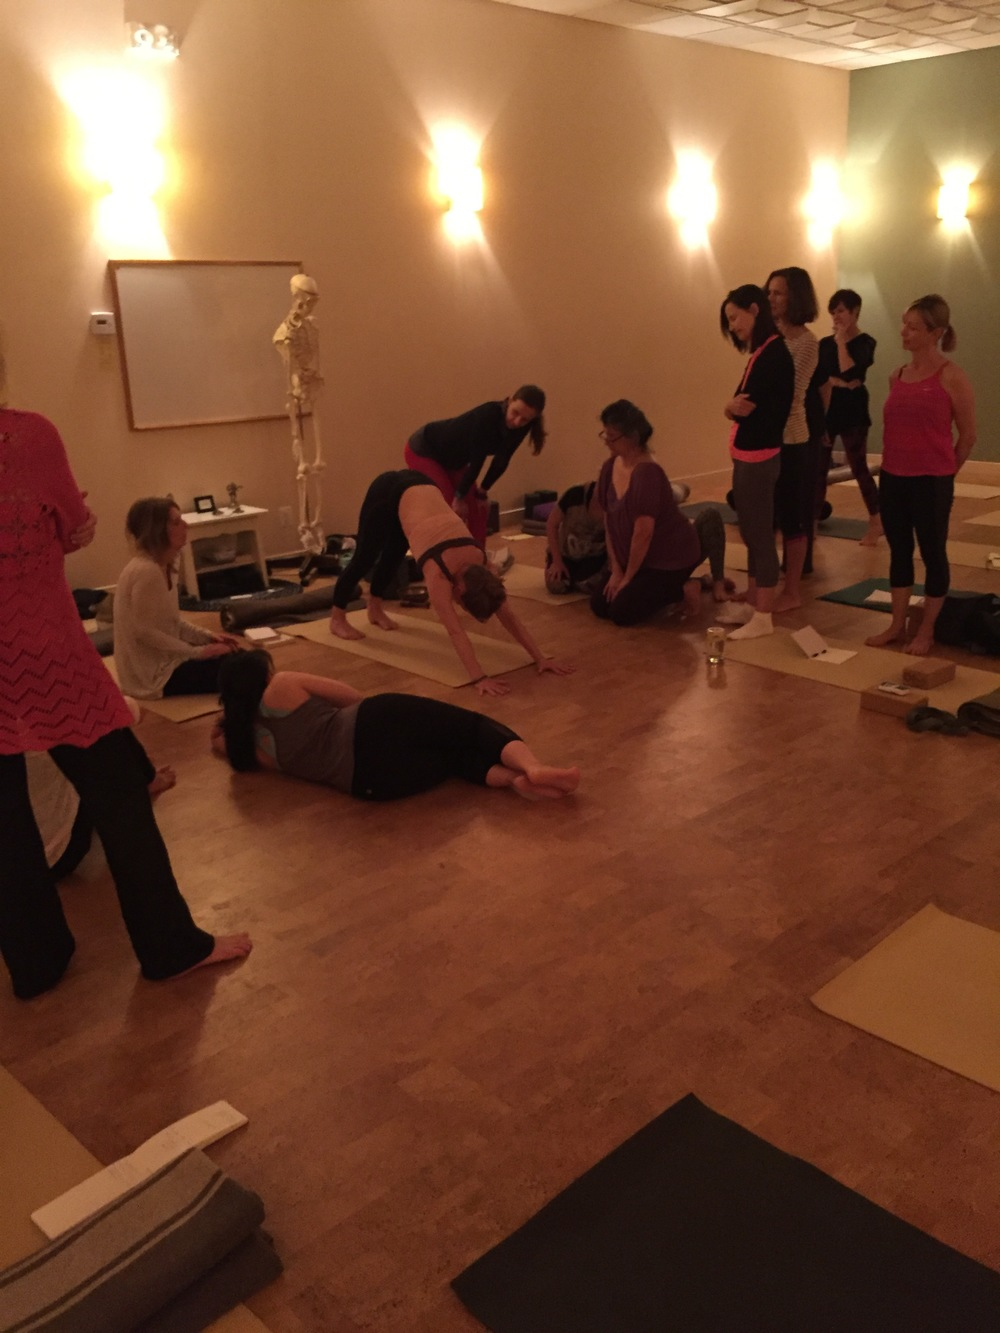 Visiting Master Teacher faculty demonstrates movement of the spine in downward facing dog pose.